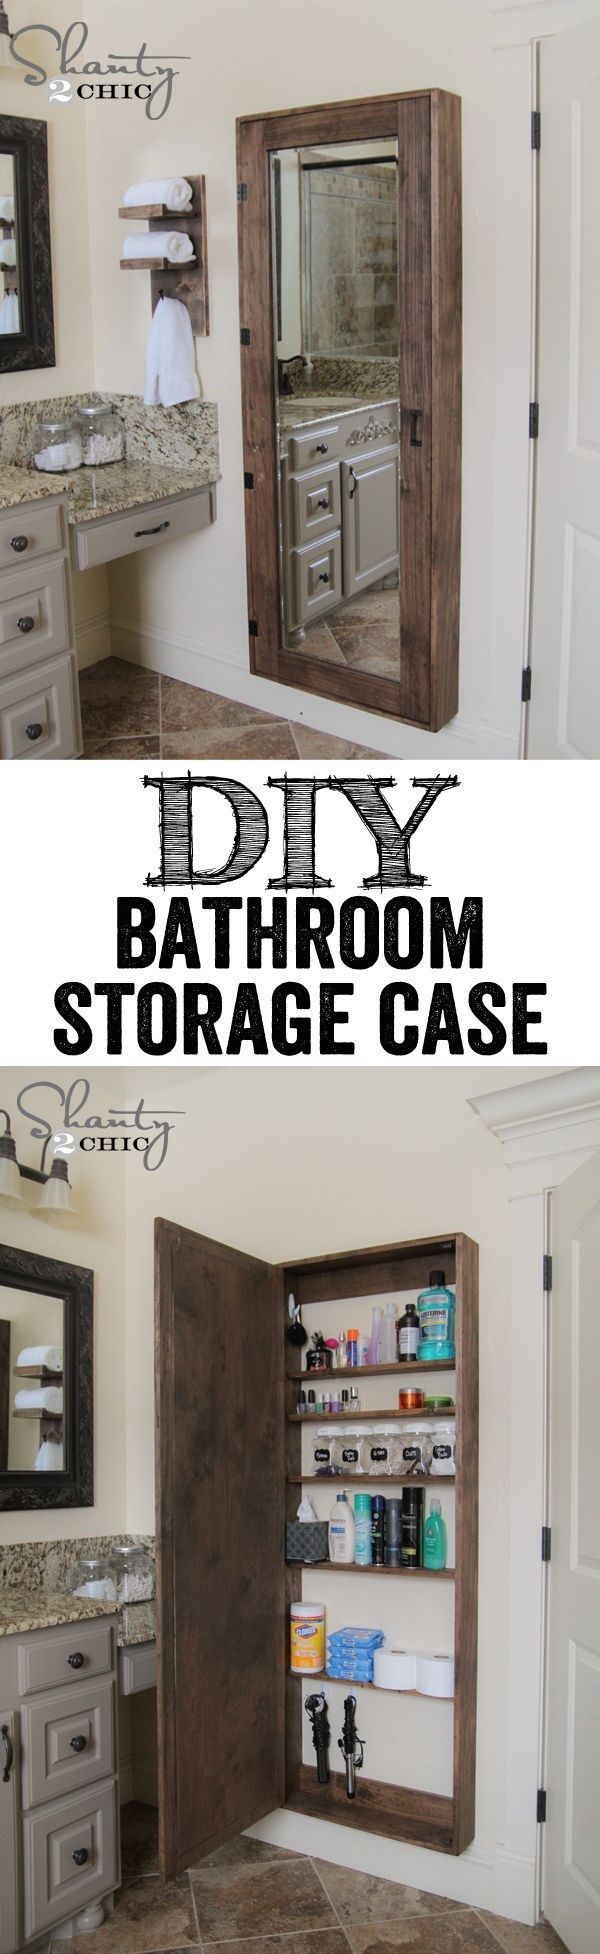 DIY Bathroom Organization Cabinet with full length mirror. But for jewelry storage instead!!!!